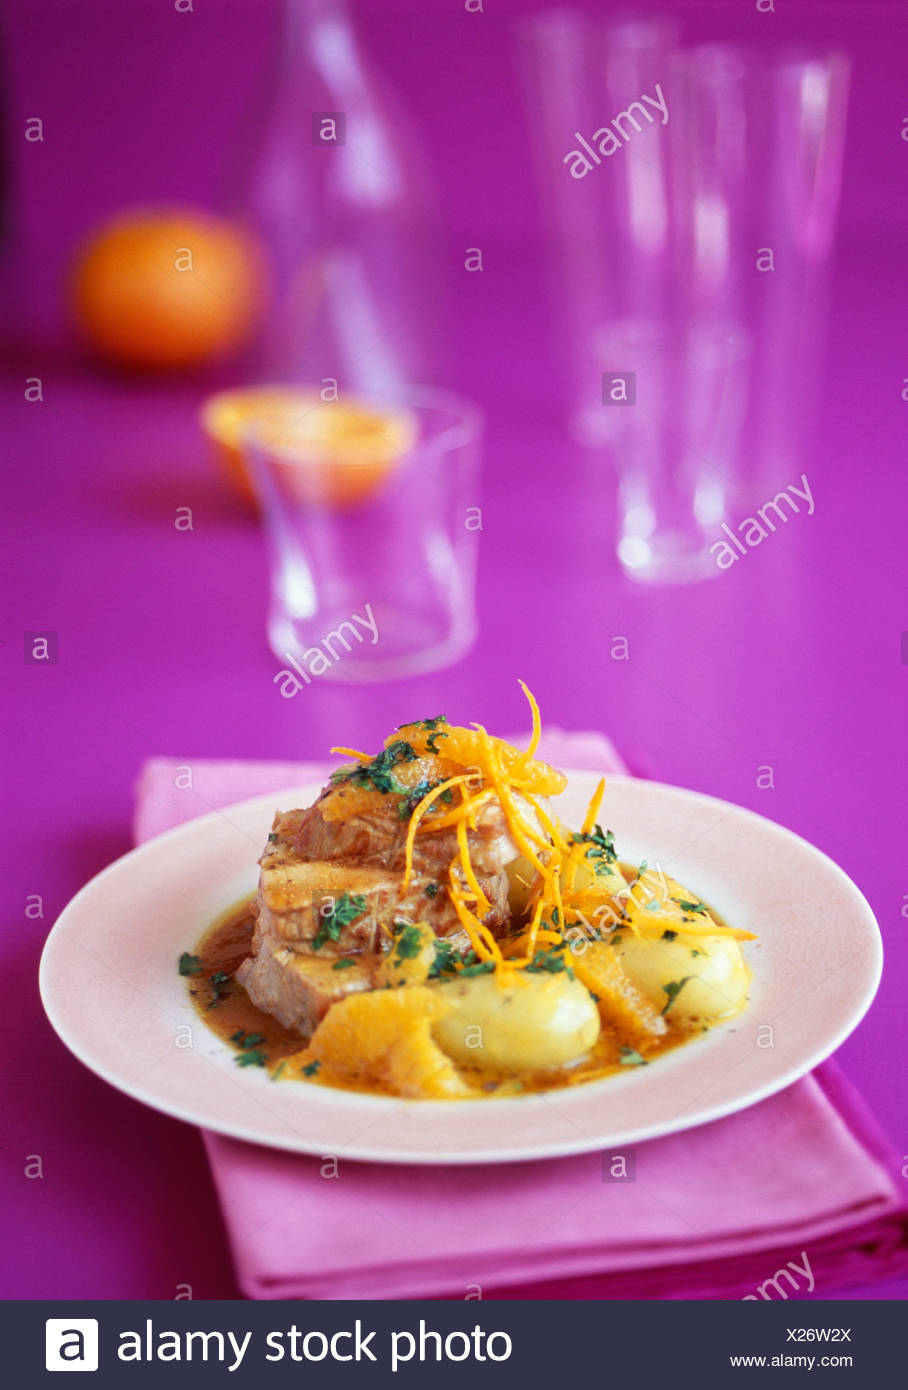 how to cook ratte potatoes